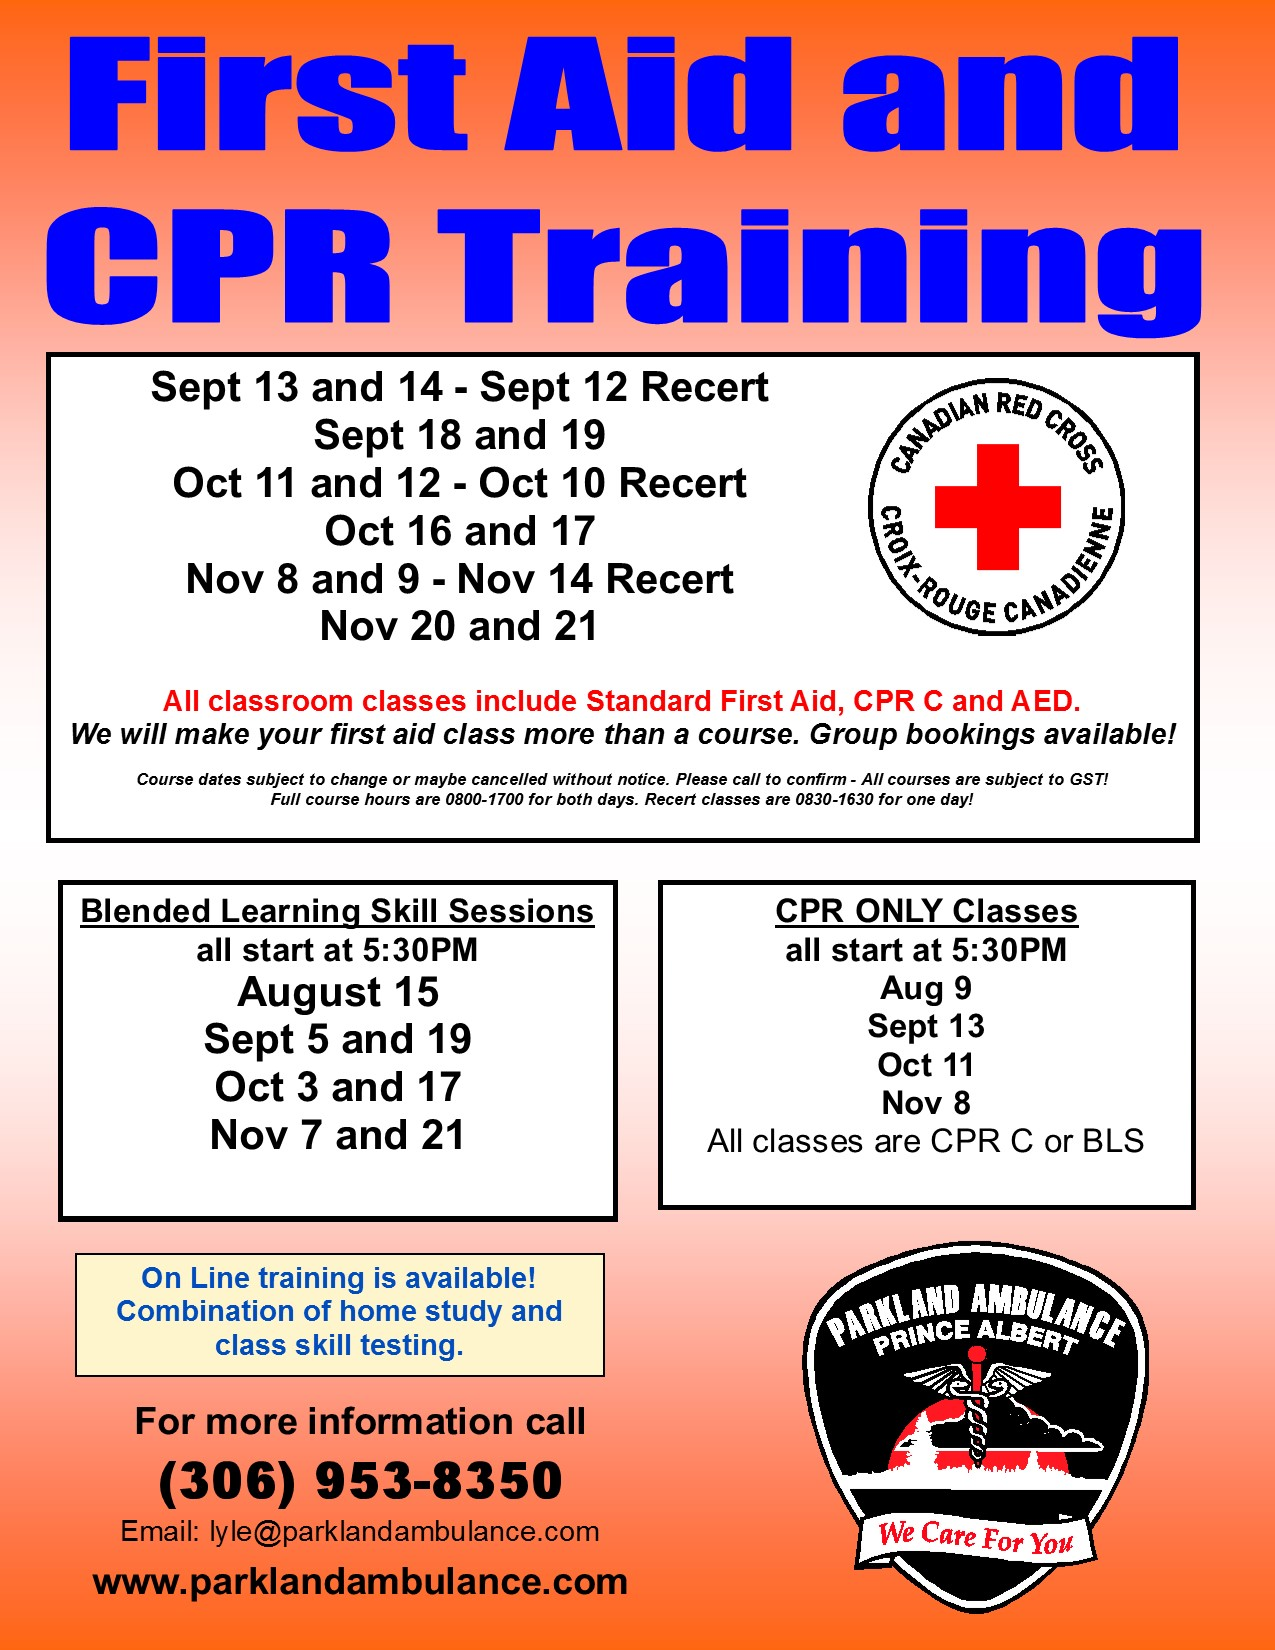 First aid and cpr training general parkland ambulance care ltd xflitez Choice Image